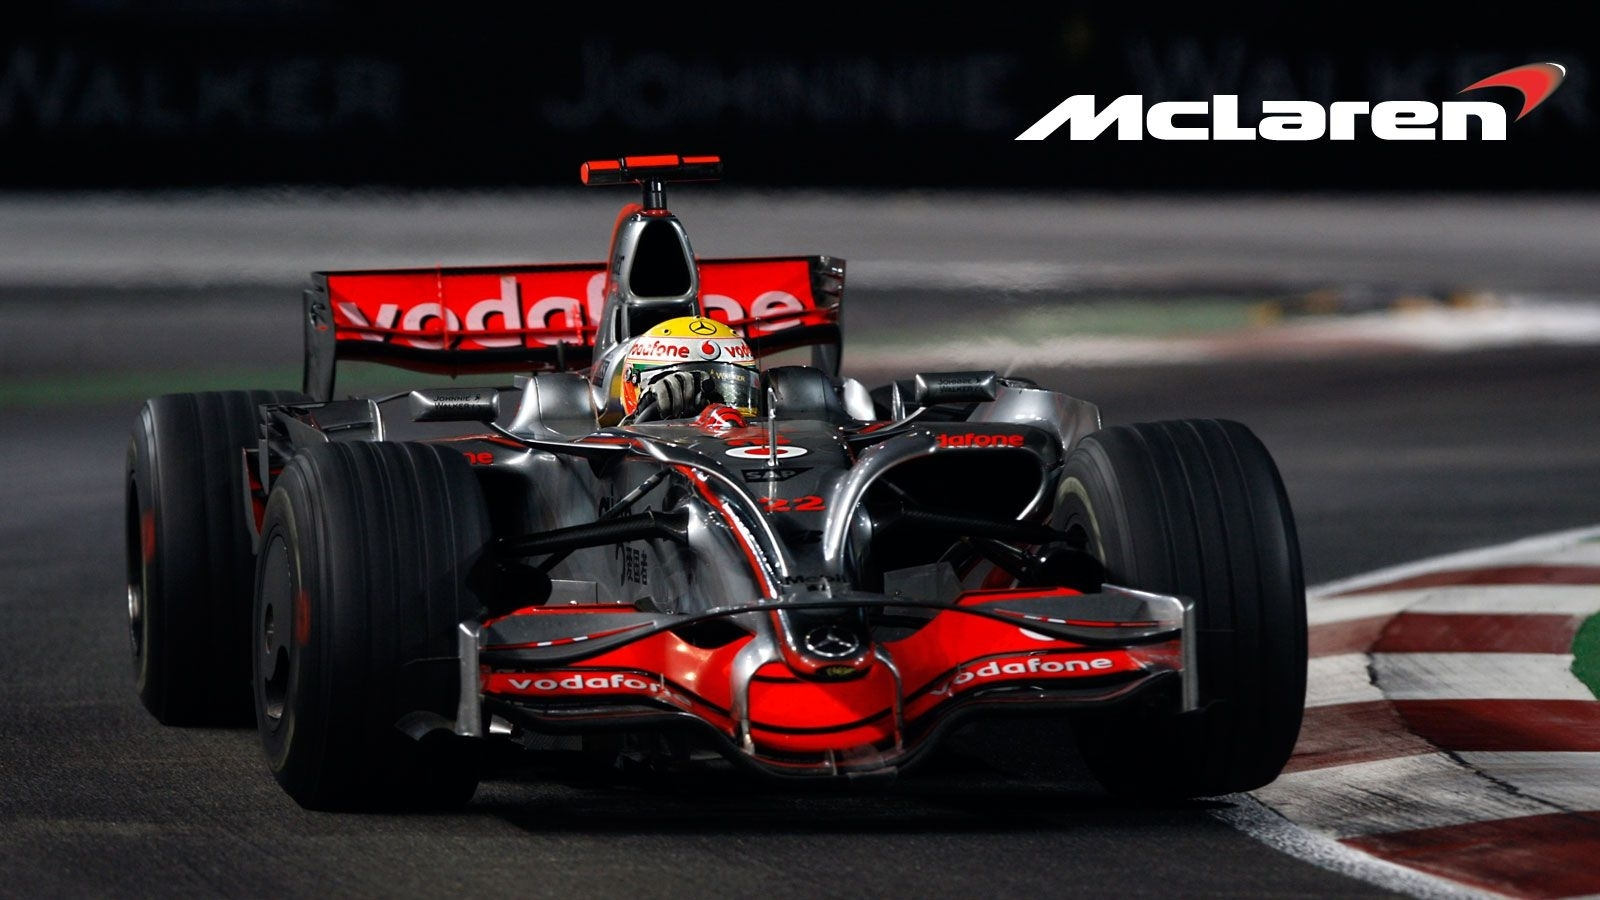 mclaren formula 1 wallpapers – weneedfun